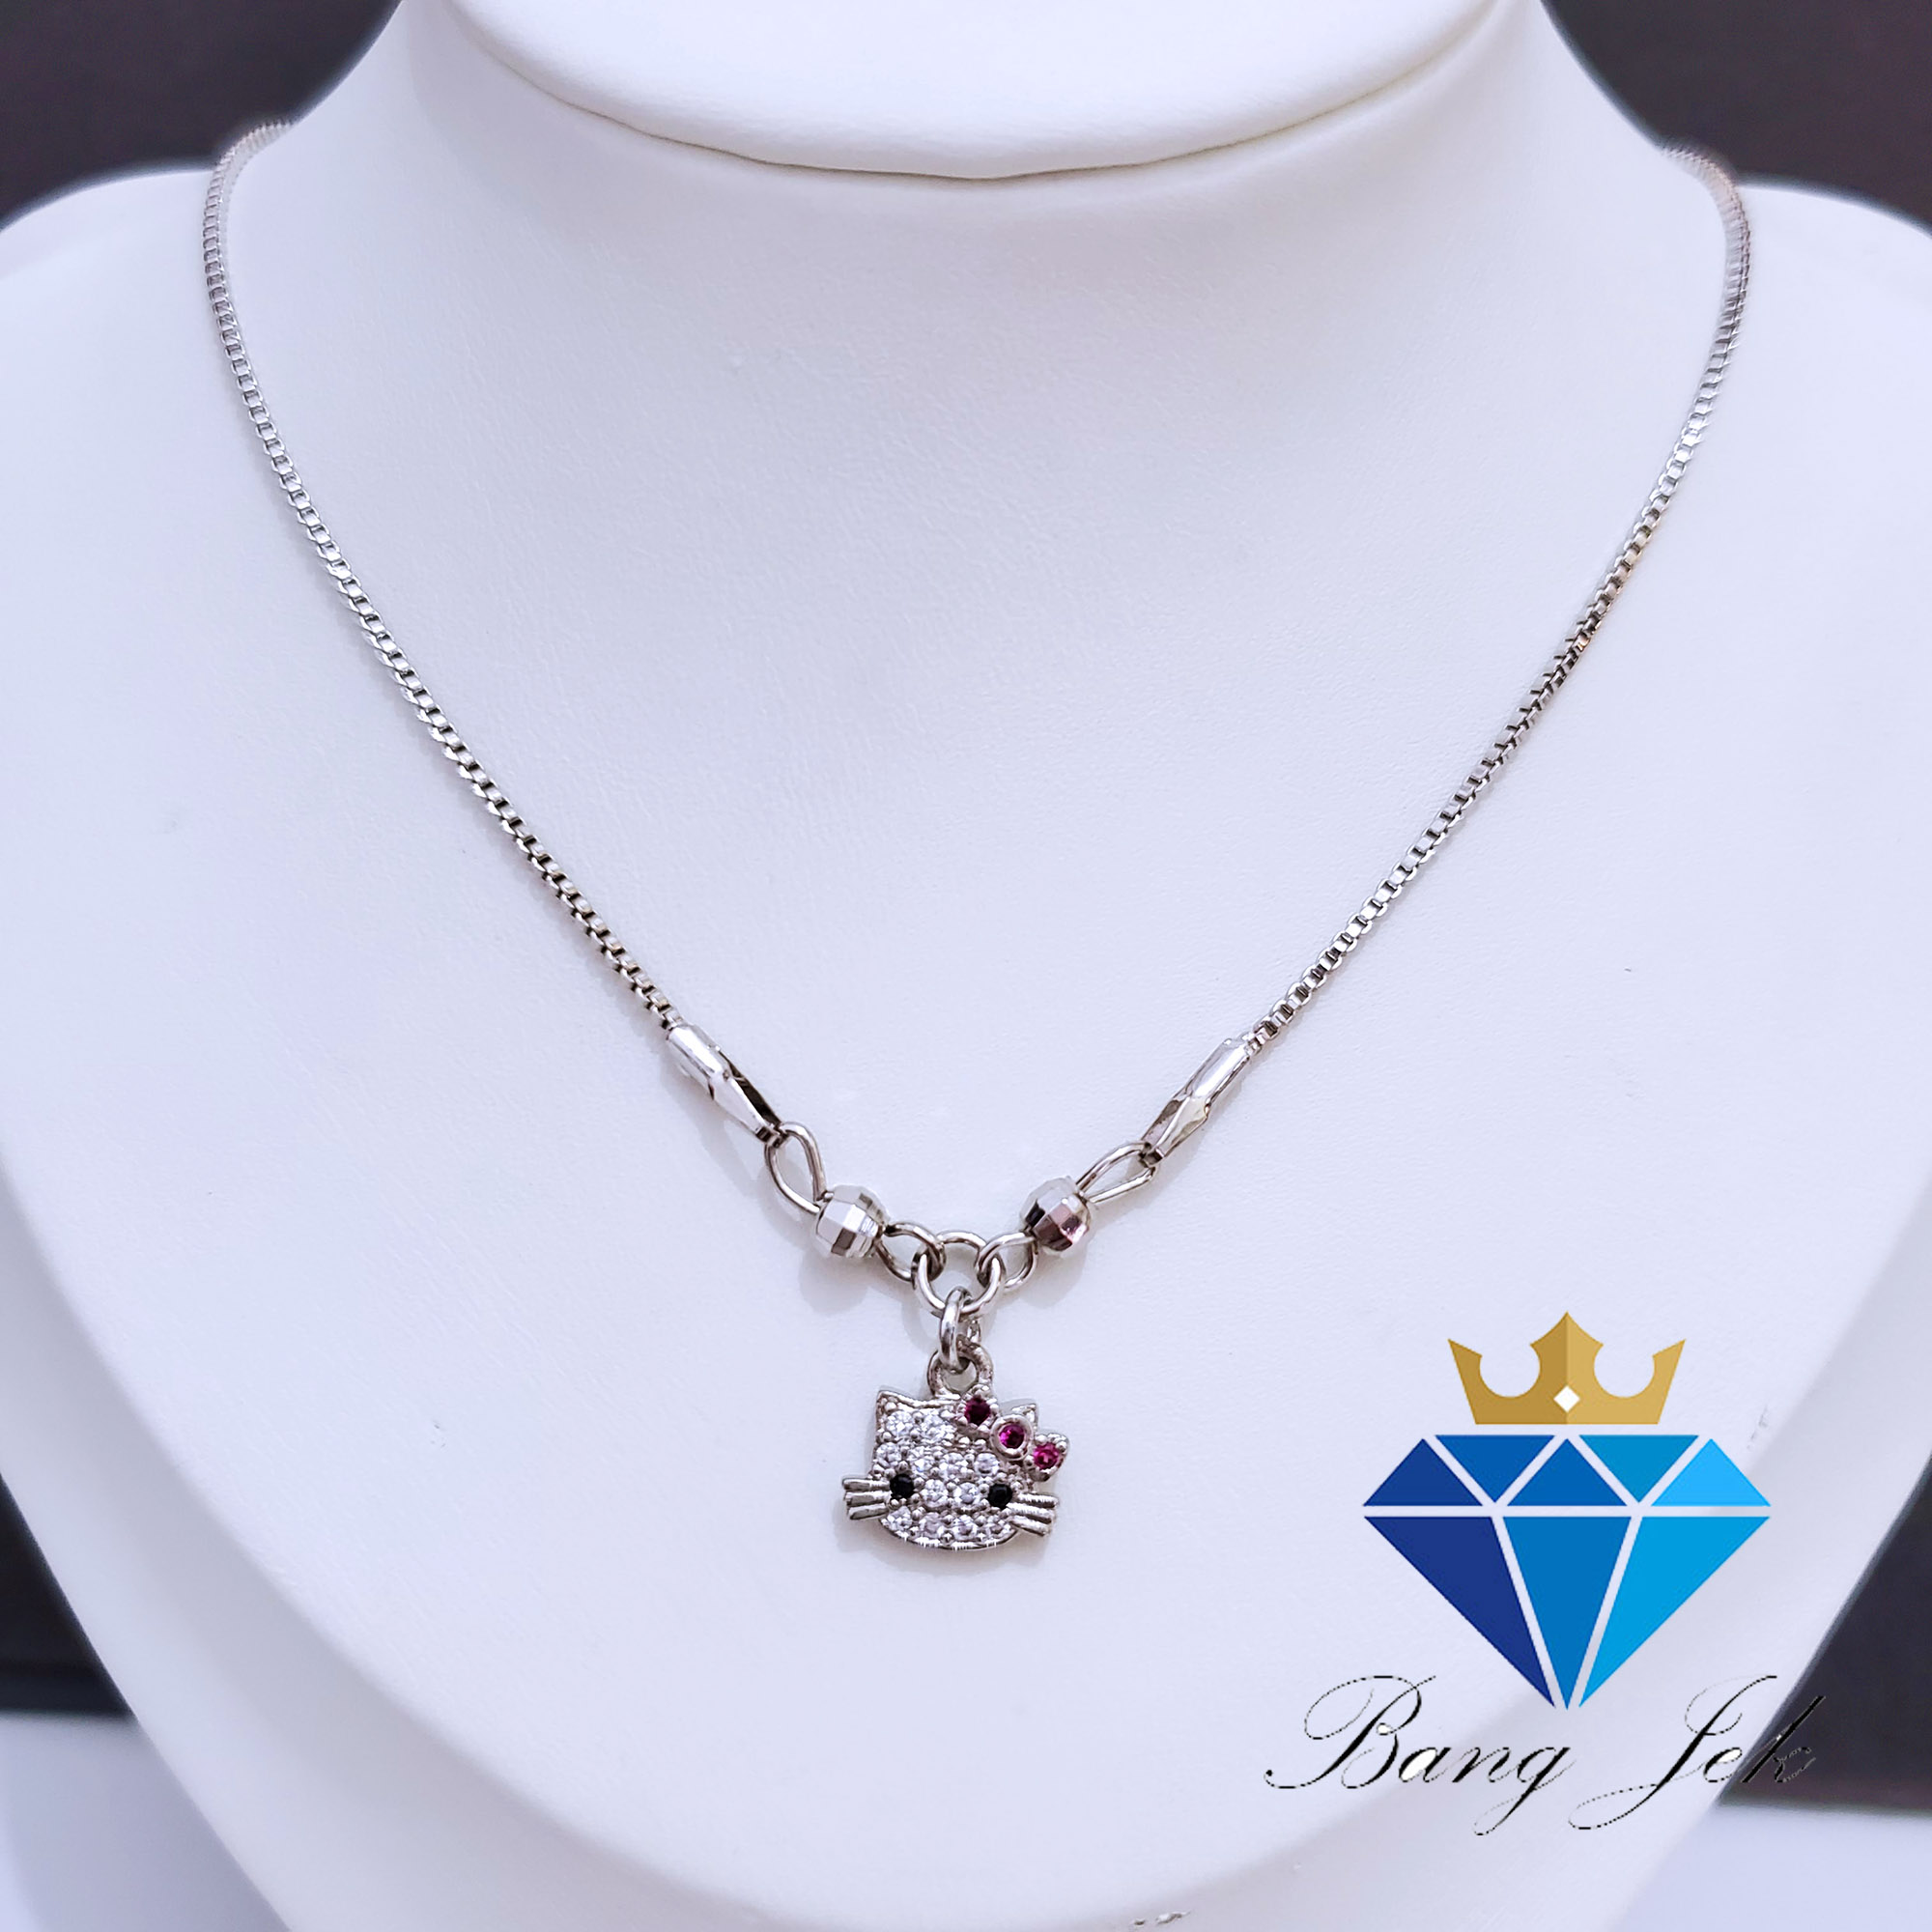 kalung anak anti hitam karat motif hello kitty